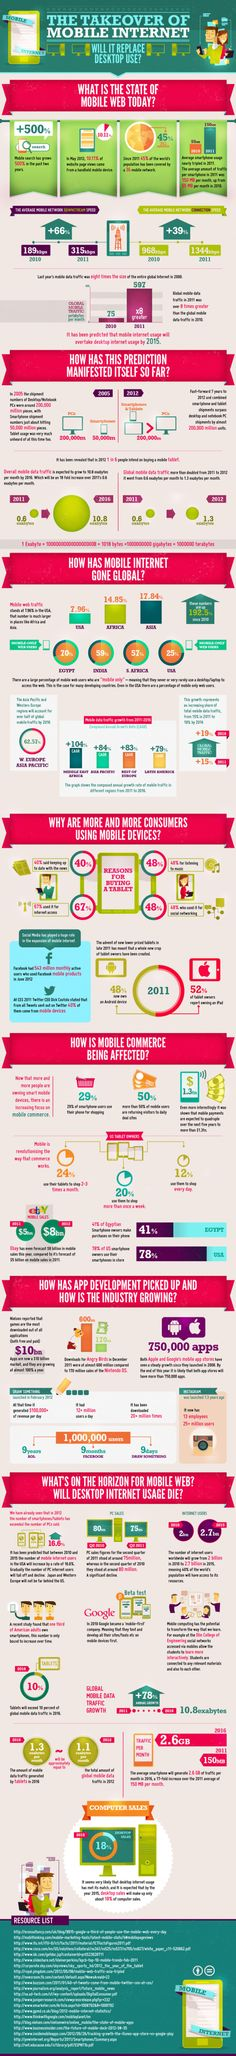 Will Mobile Internet Replace The Desktop Internet? #infographic